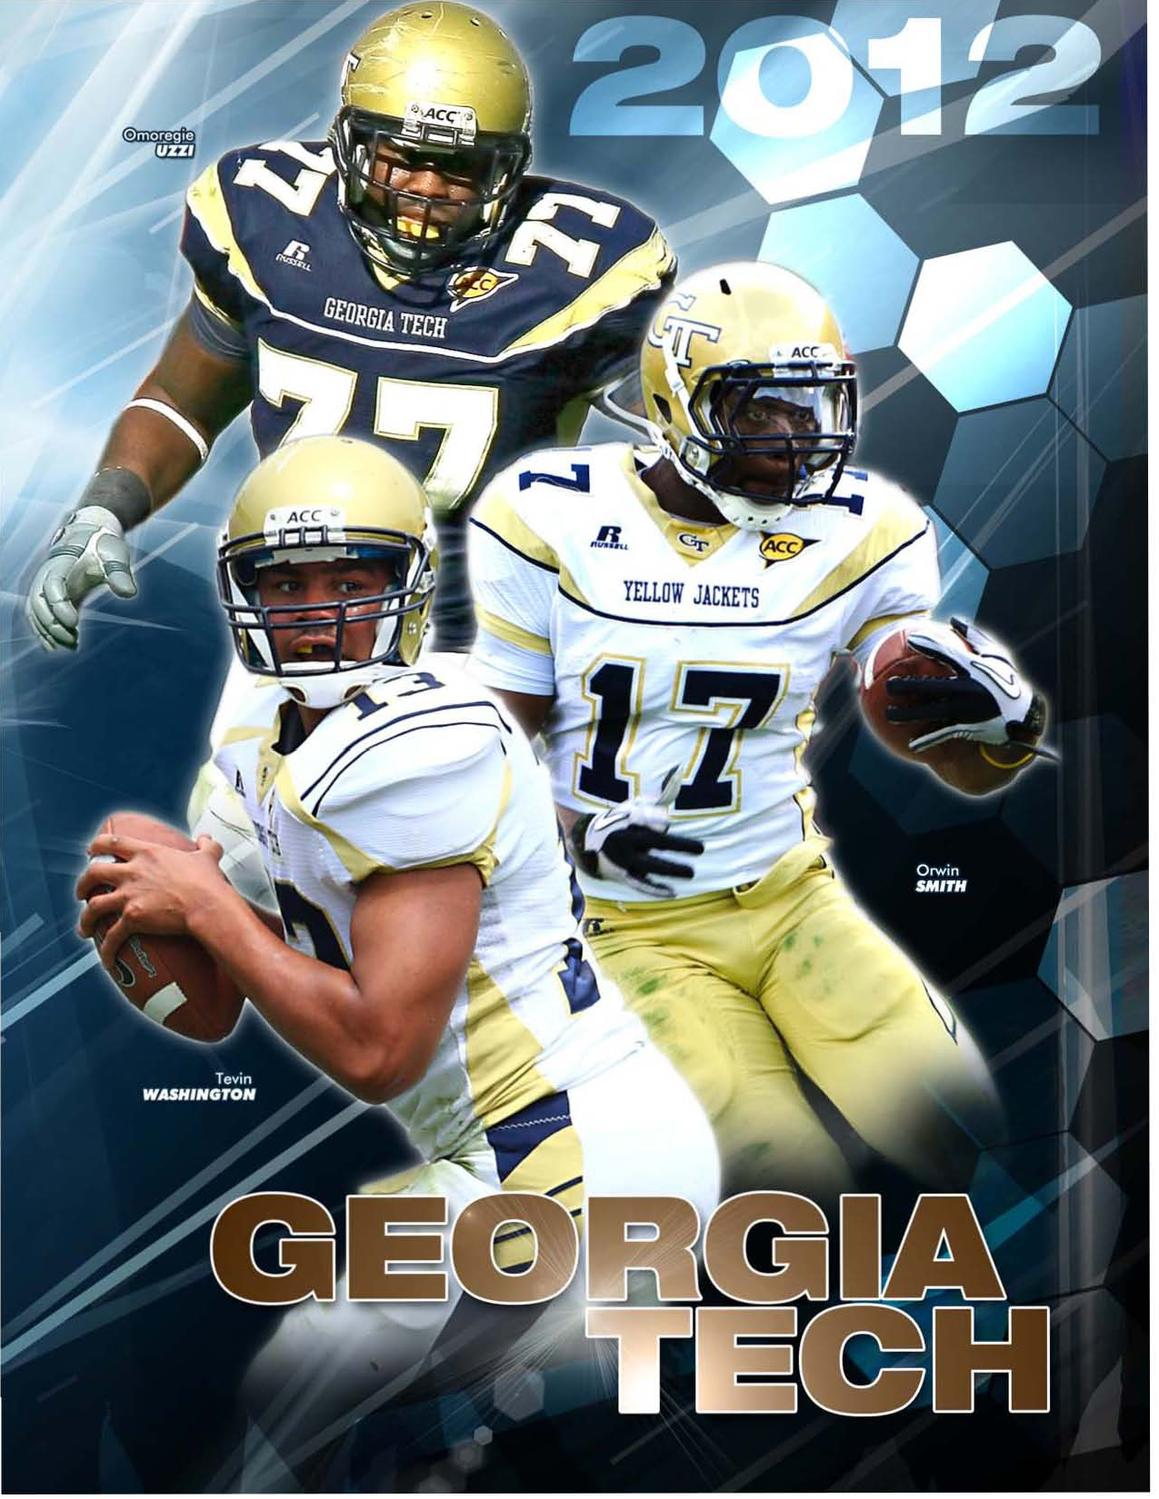 e0375d476a 2012 Georgia Tech Football Info Guide by GTAthletics - issuu